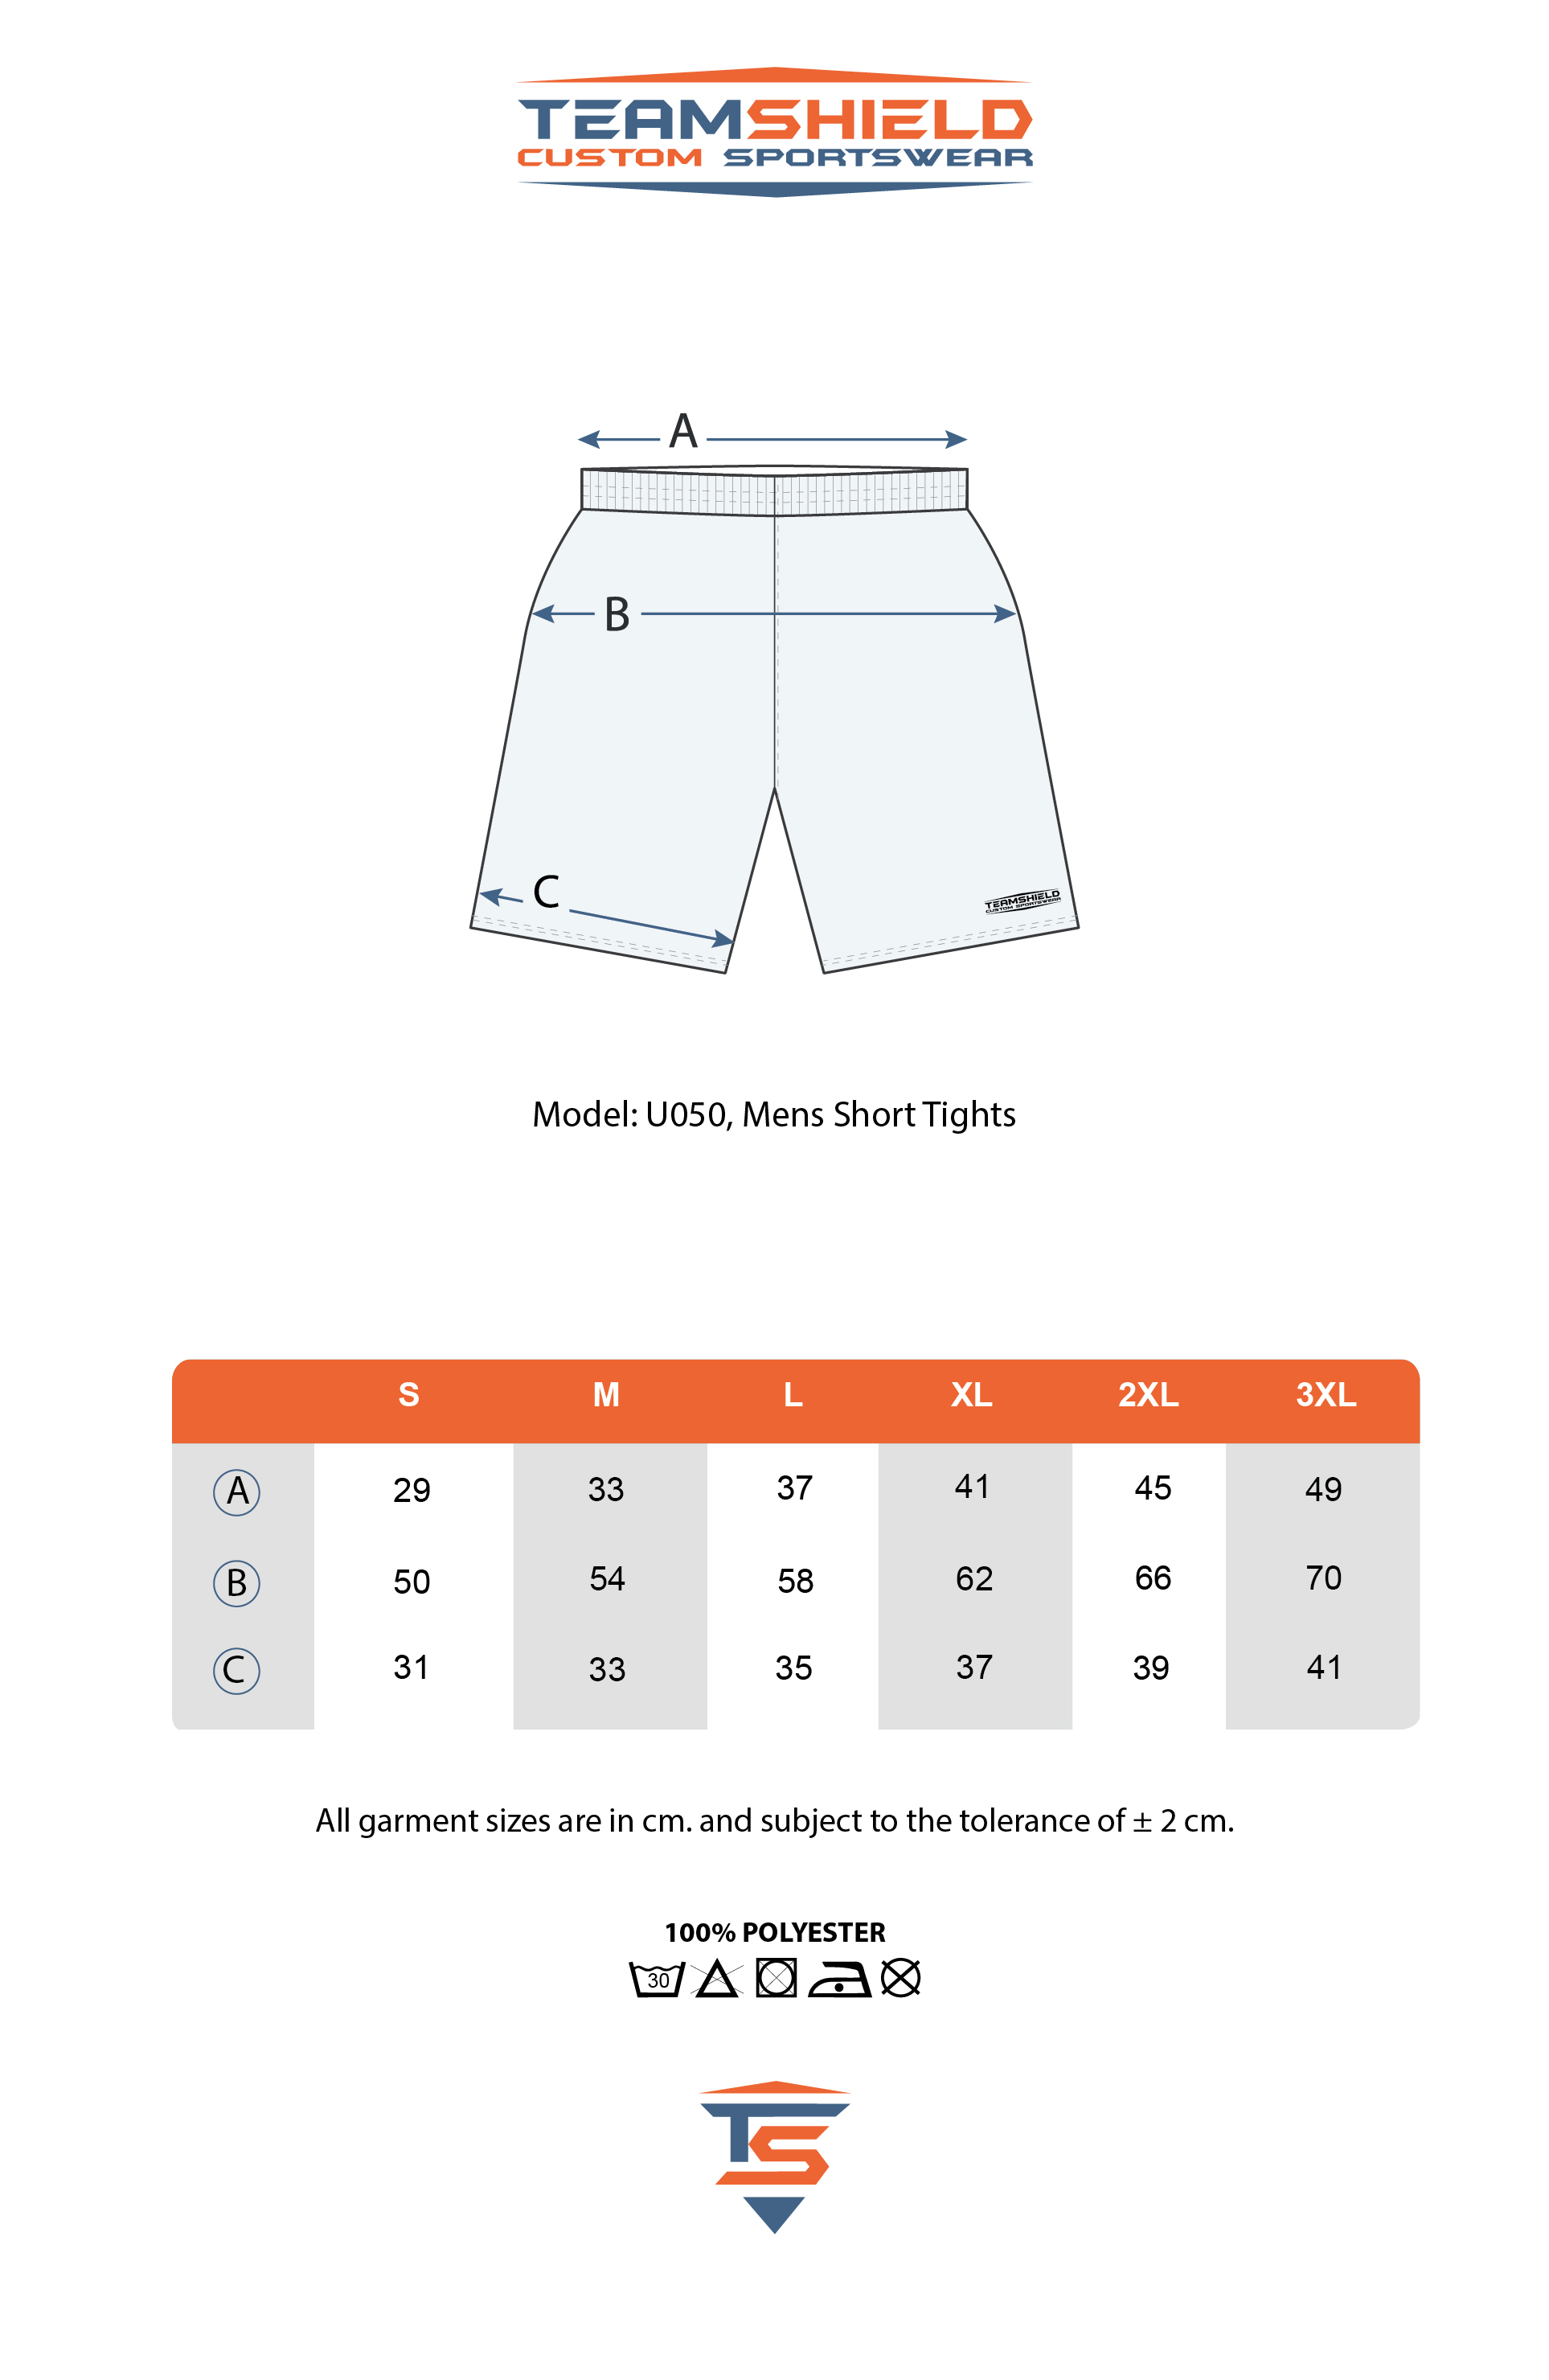 Teamshield-Custom-Teamwear-Sizechart-U050-Sublimation-Shorts-Unisex